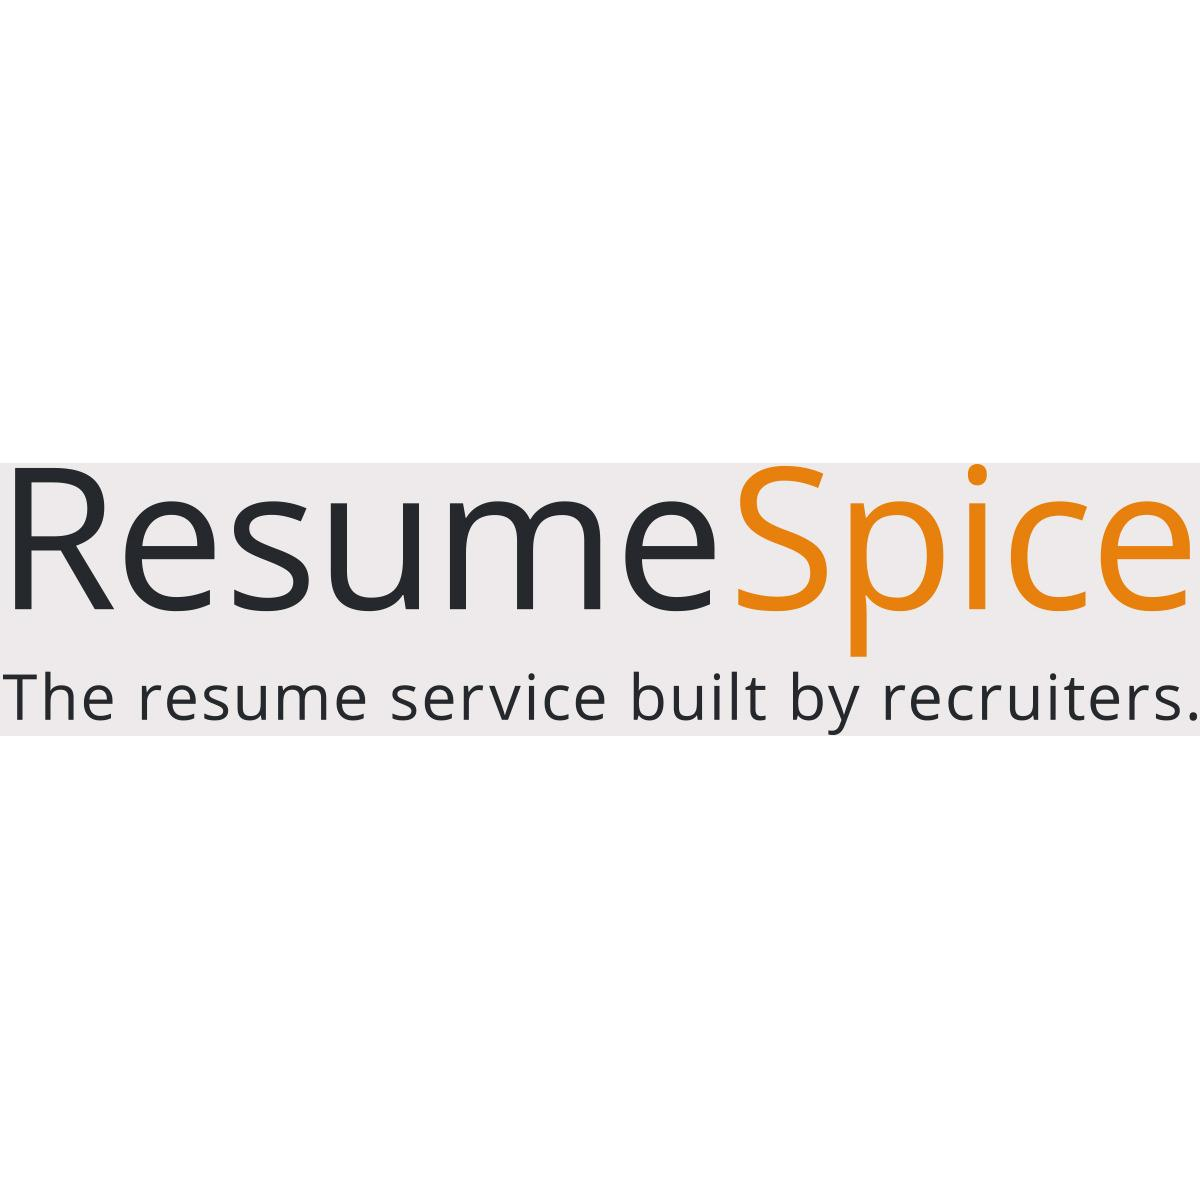 professional resume writing services in houston All writers have a minimum of 5 years current resume writing experience 7 writers are certified professional resume writers (cprw) or in the process of becoming certified.